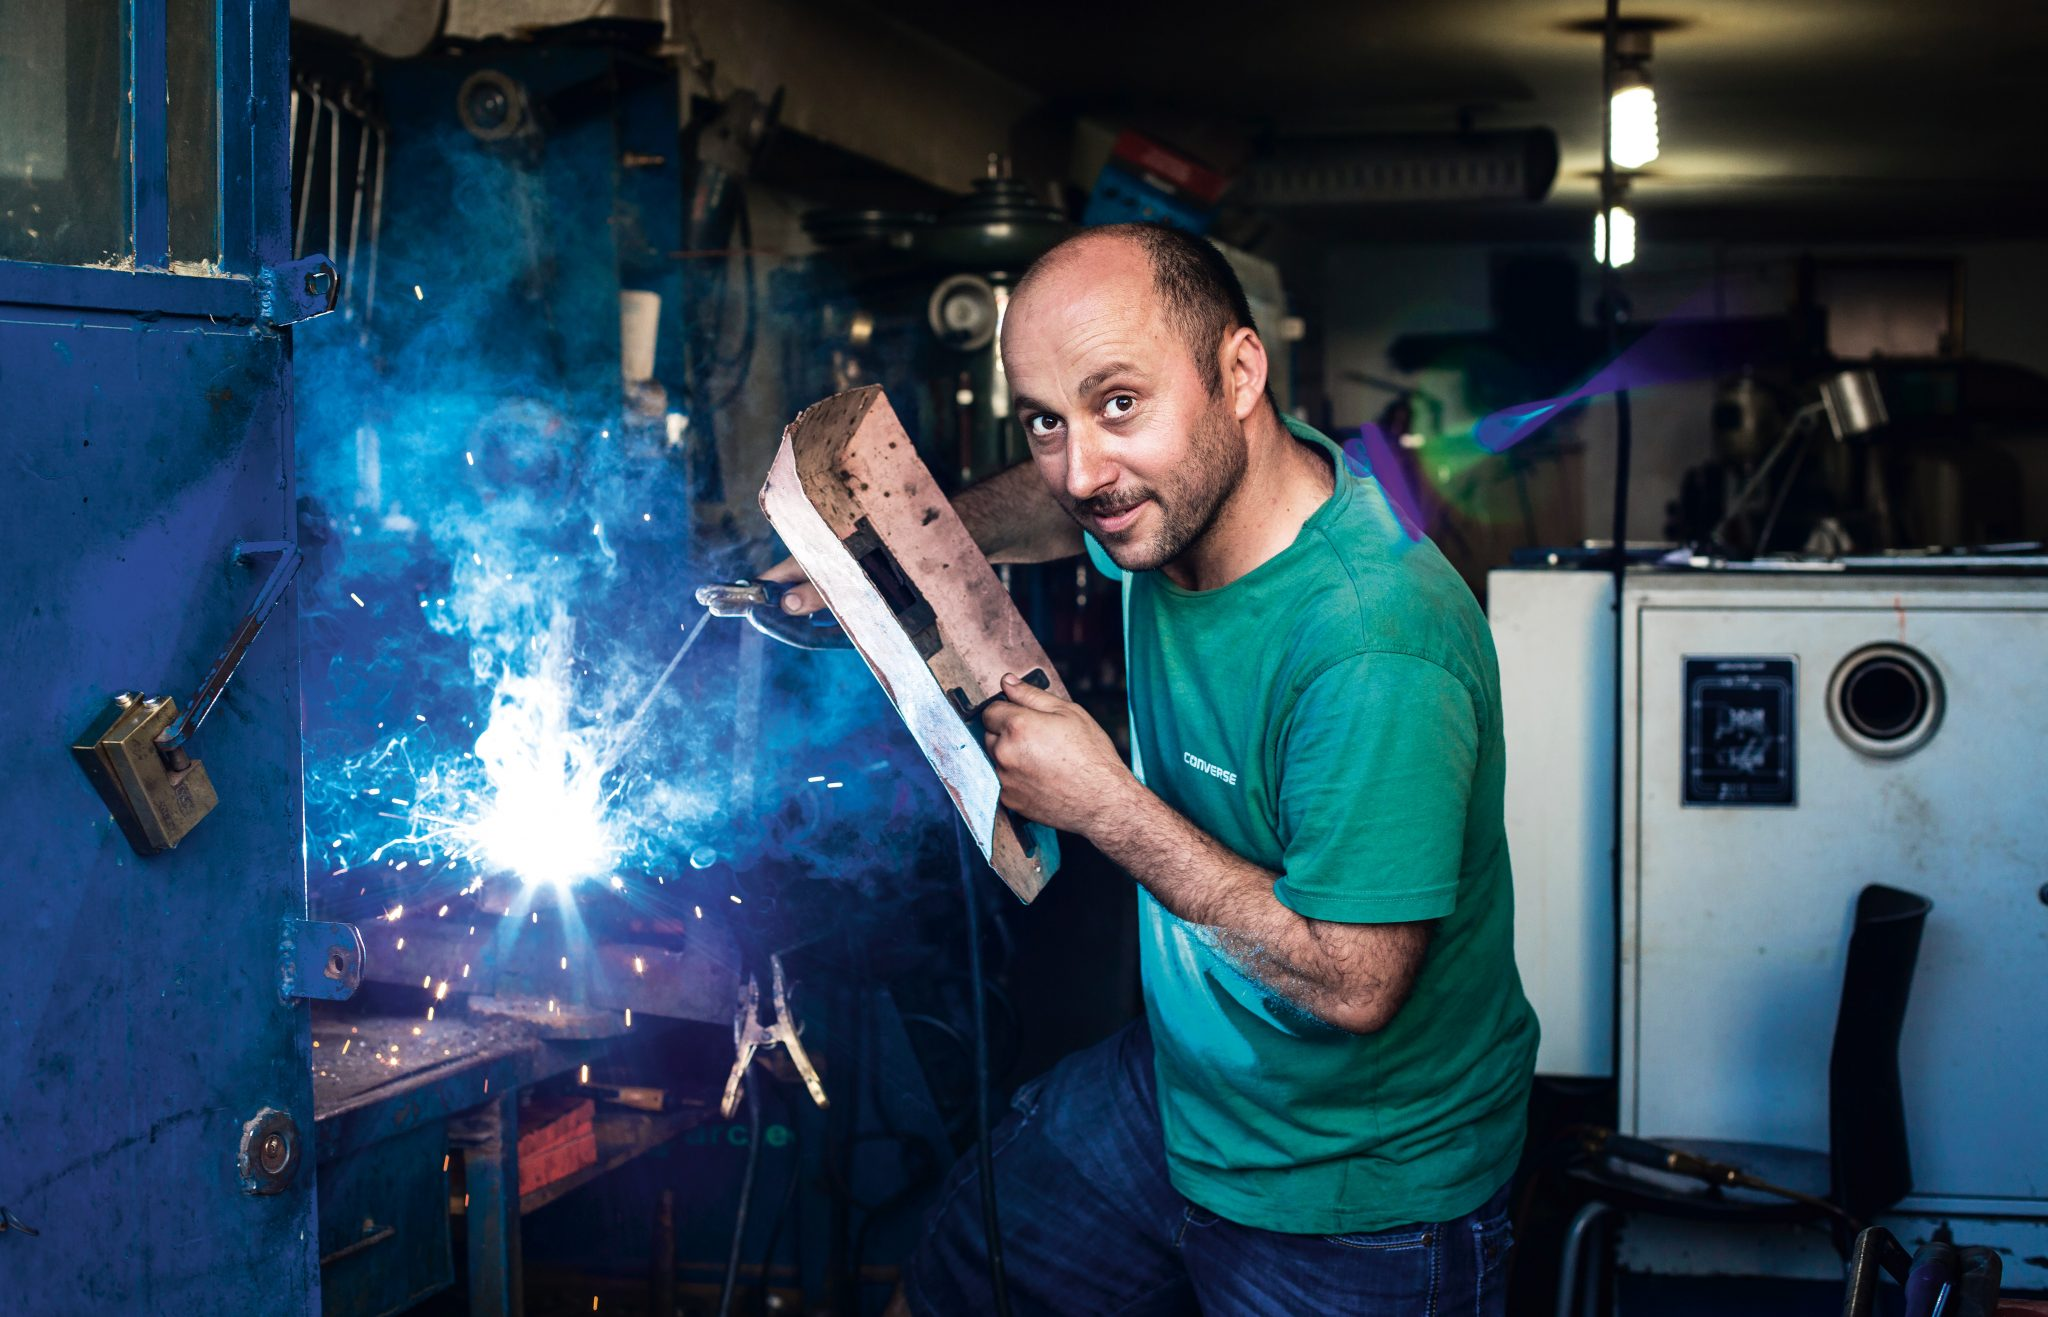 How to Become a Welder in 5 Steps